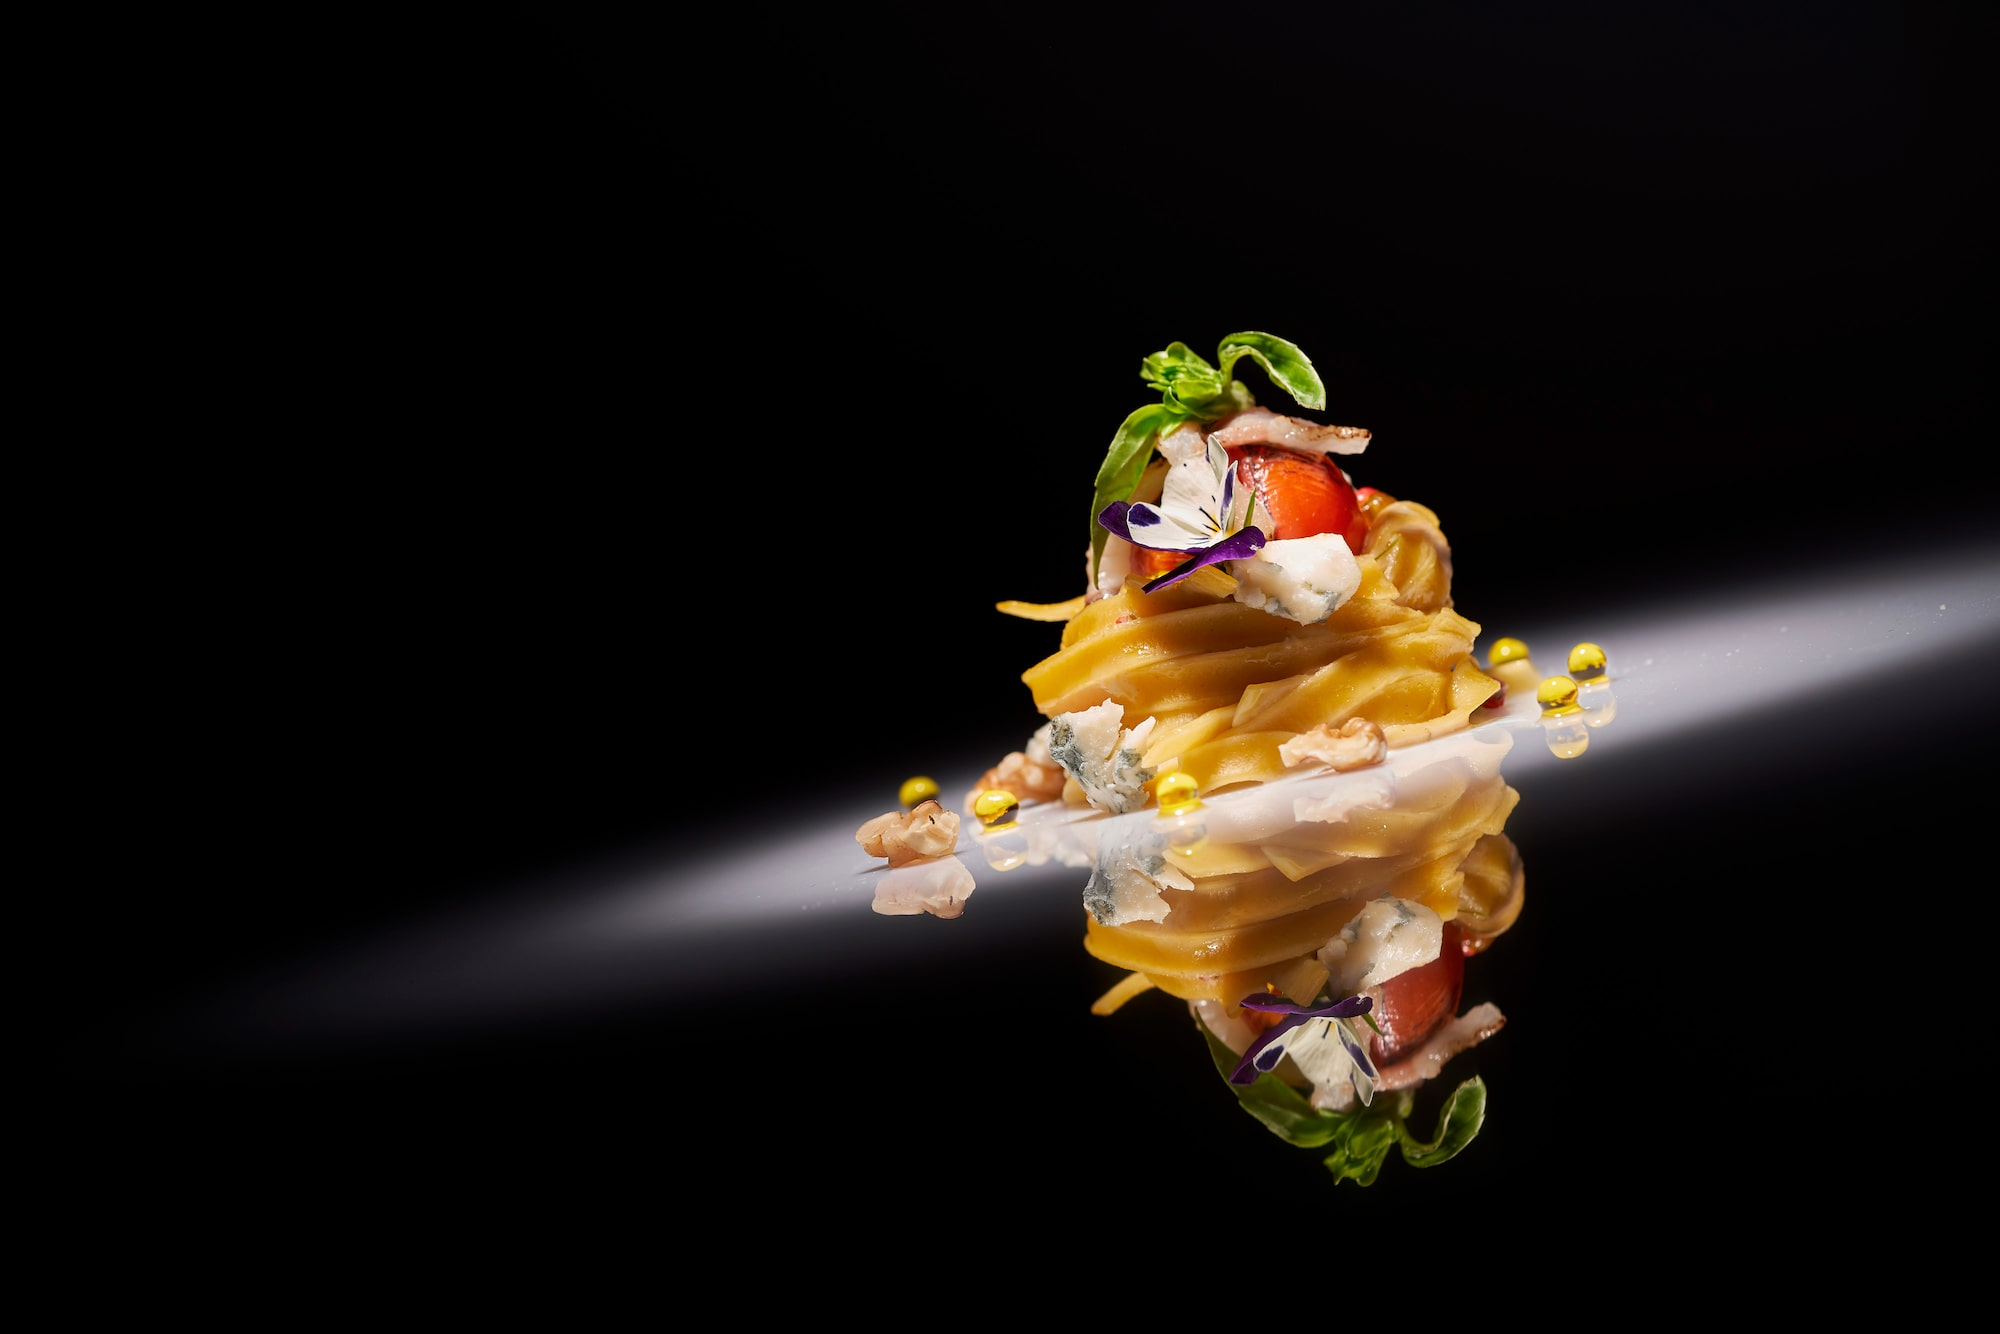 pablo gil sony alpha 7RM3 pasta topped with tomato on corn postioned on a reflective plate and lit with a spotlight